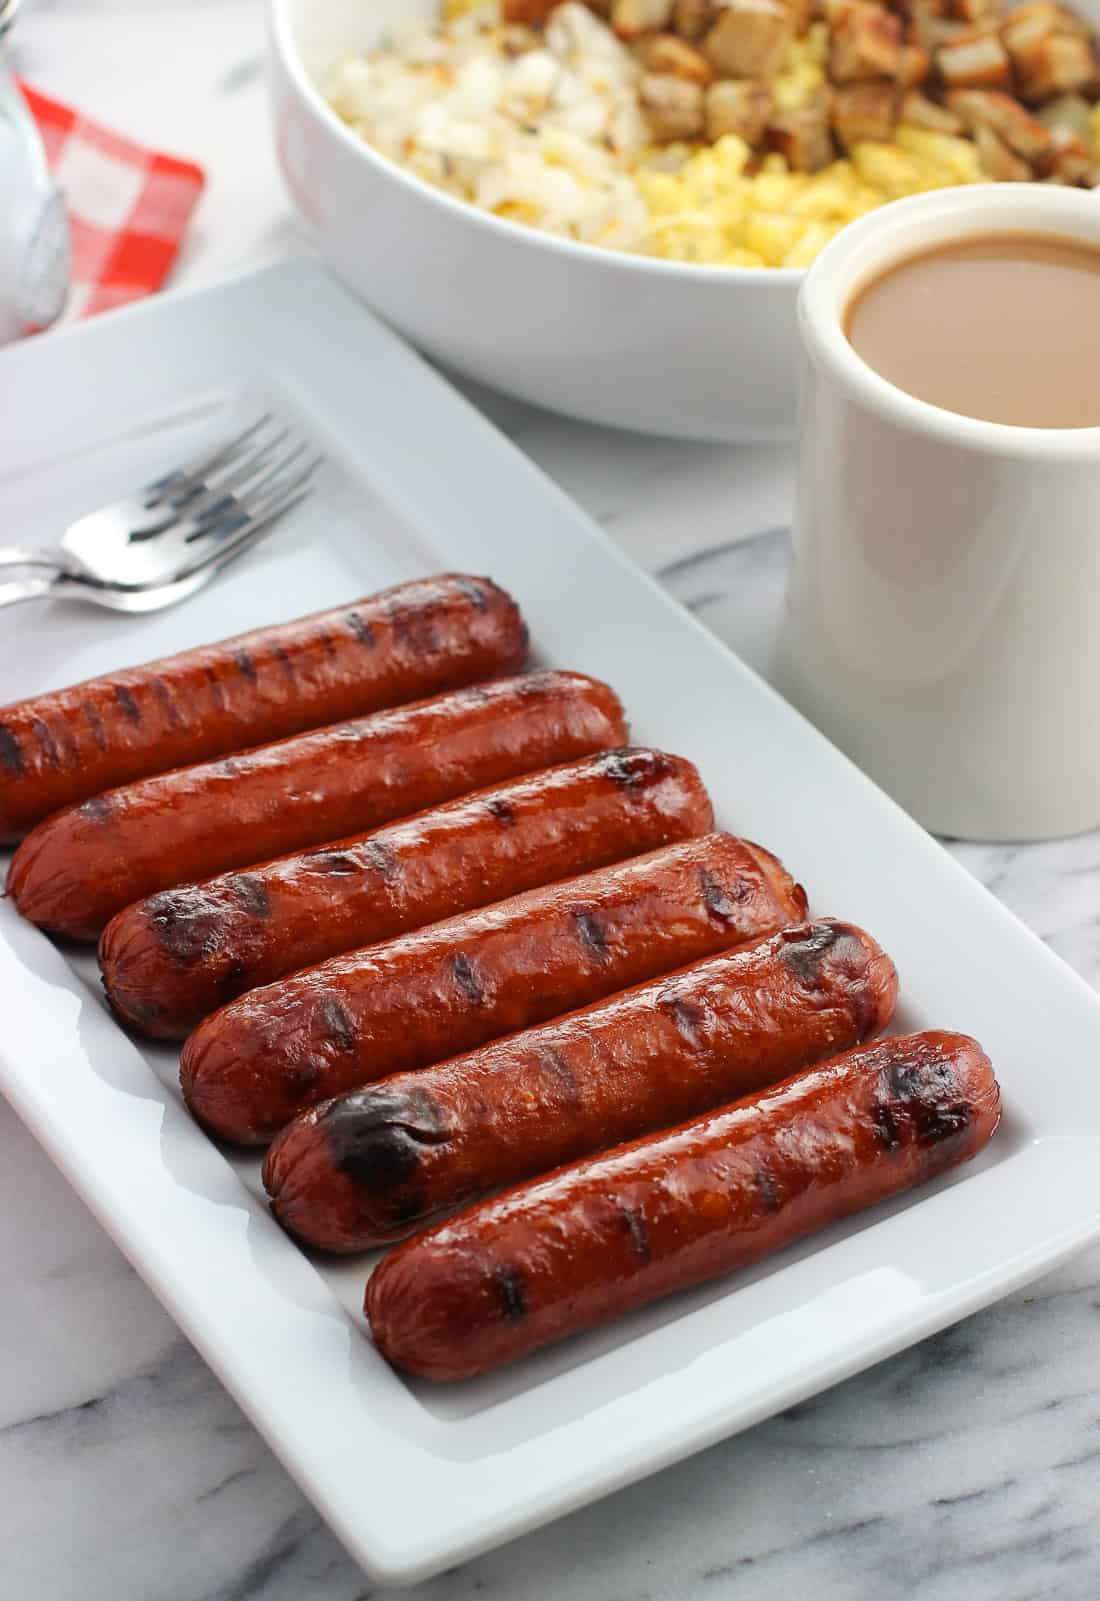 Six grilled smoked sausage links on a rectangular tray.